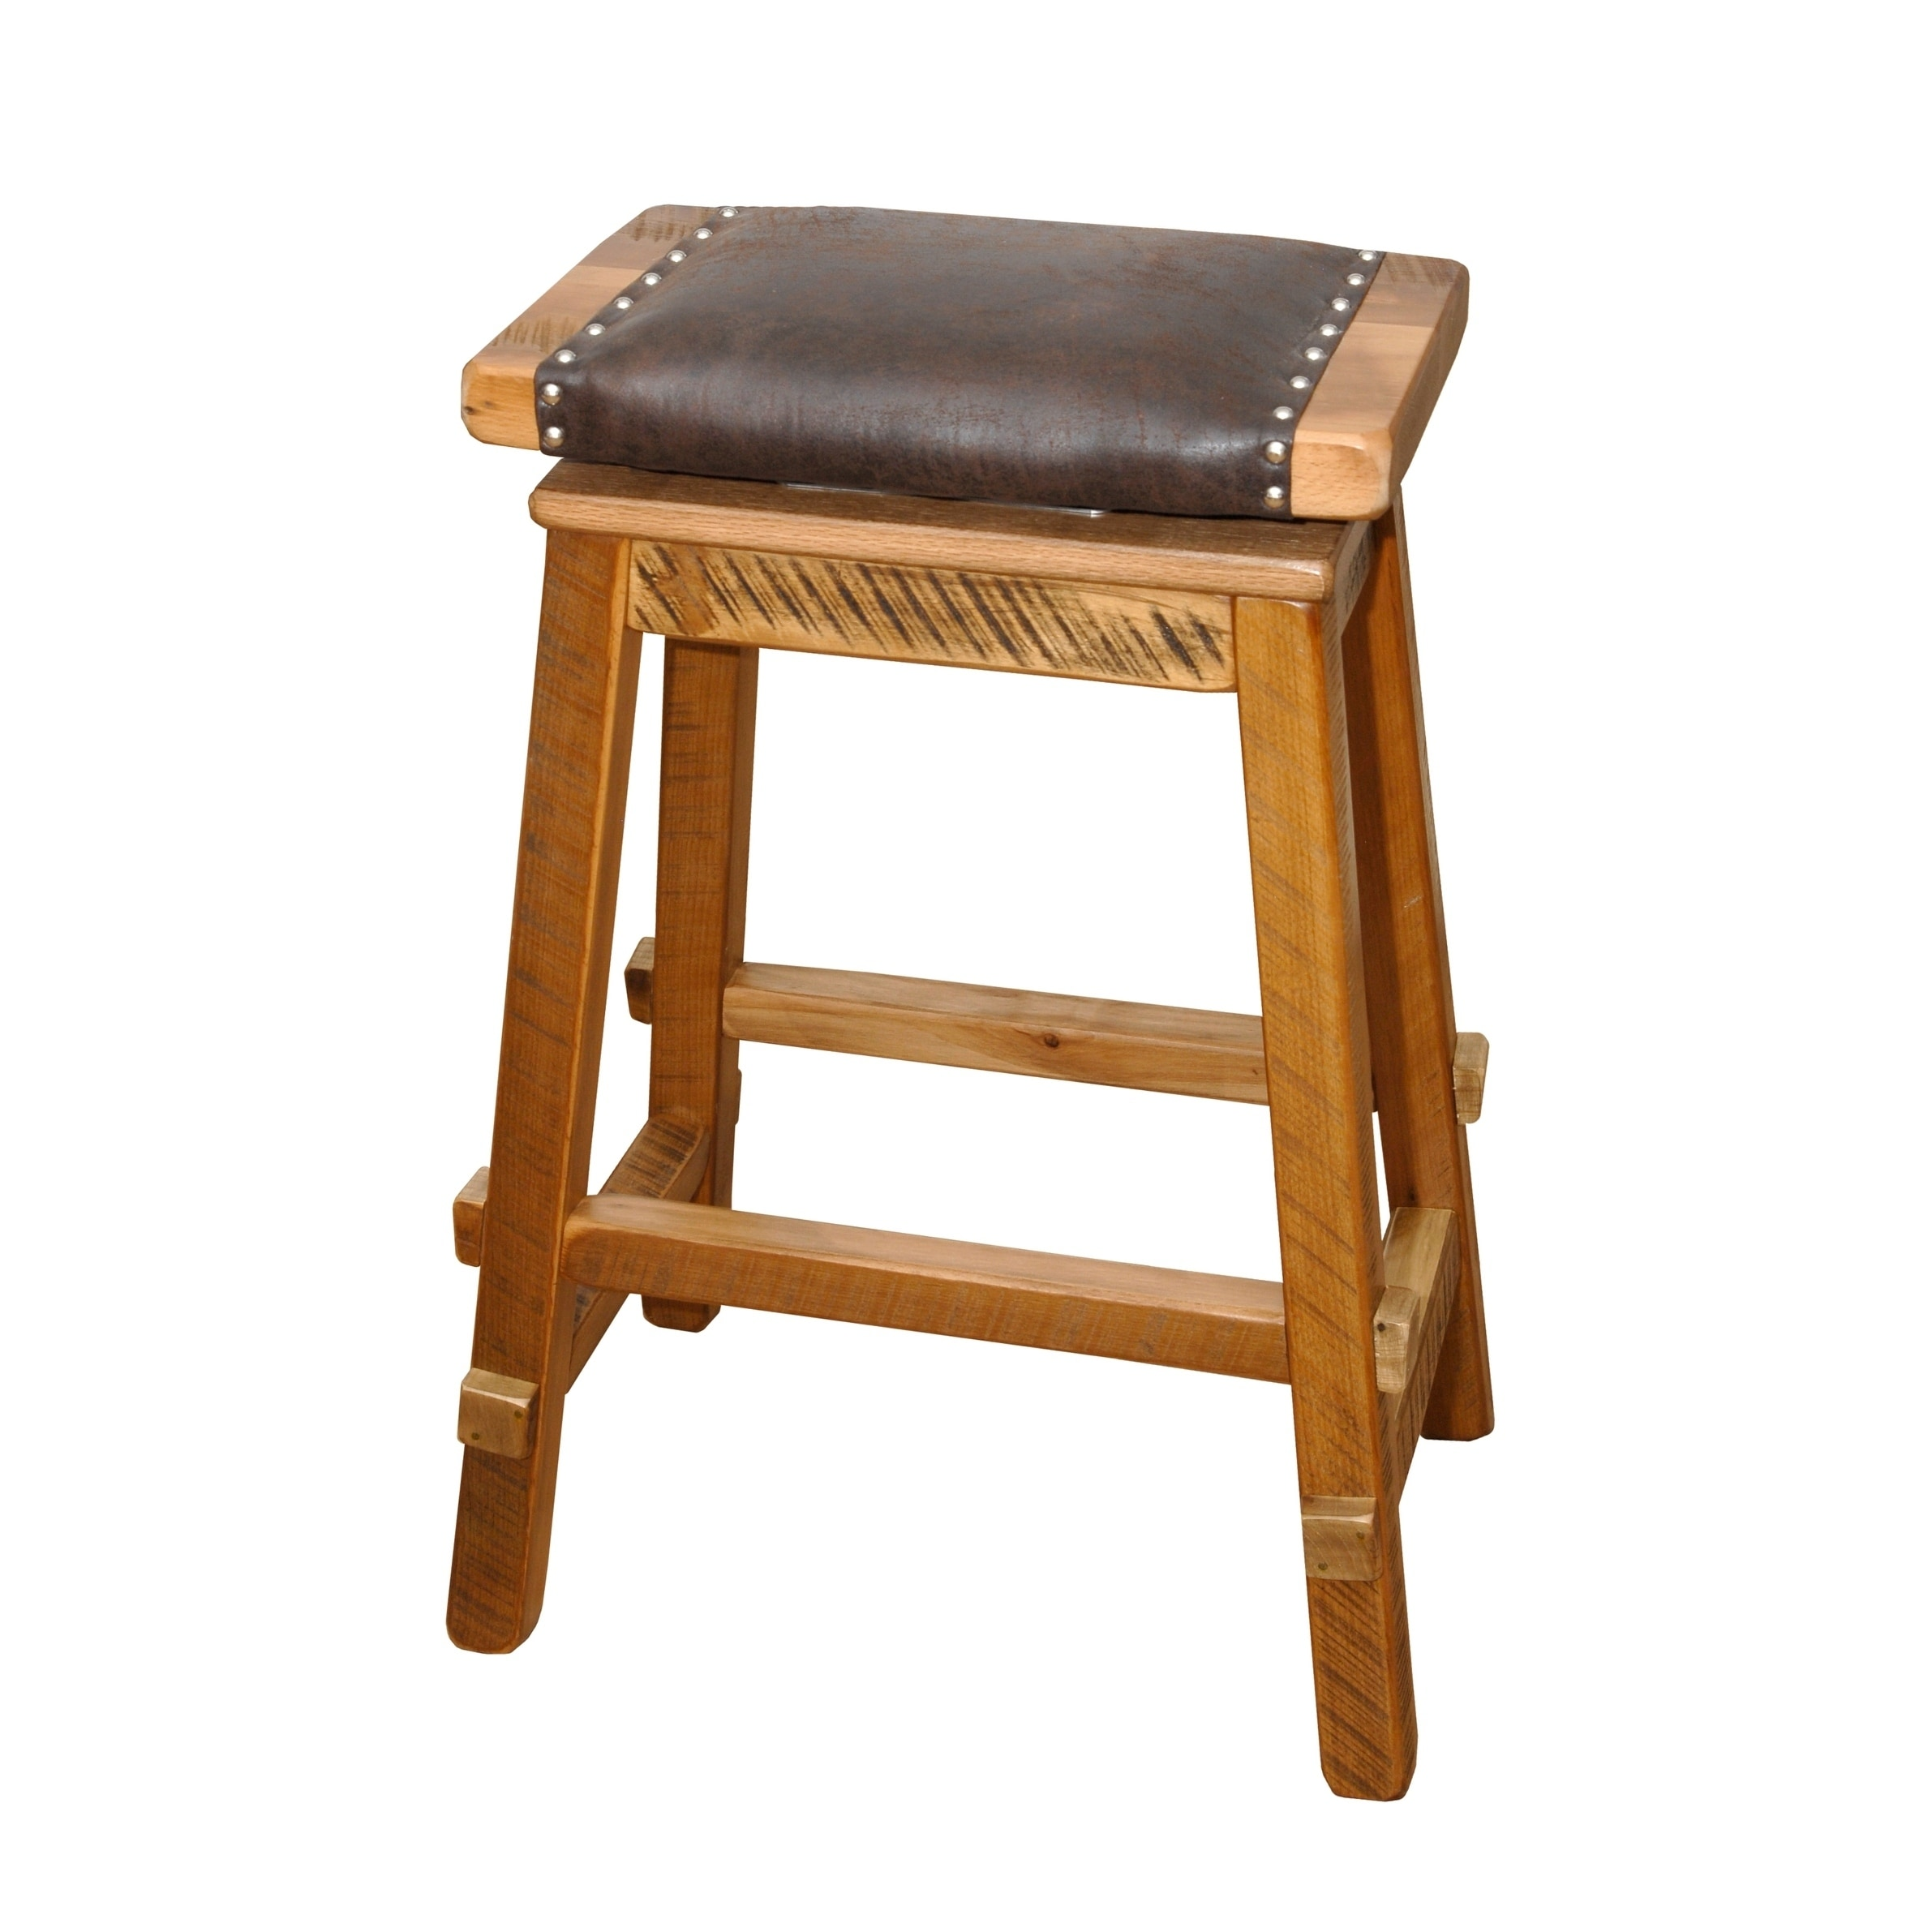 Astounding Swivel Saddle Stool In Rustic Reclaimed Barnwood With Leather Seat Theyellowbook Wood Chair Design Ideas Theyellowbookinfo